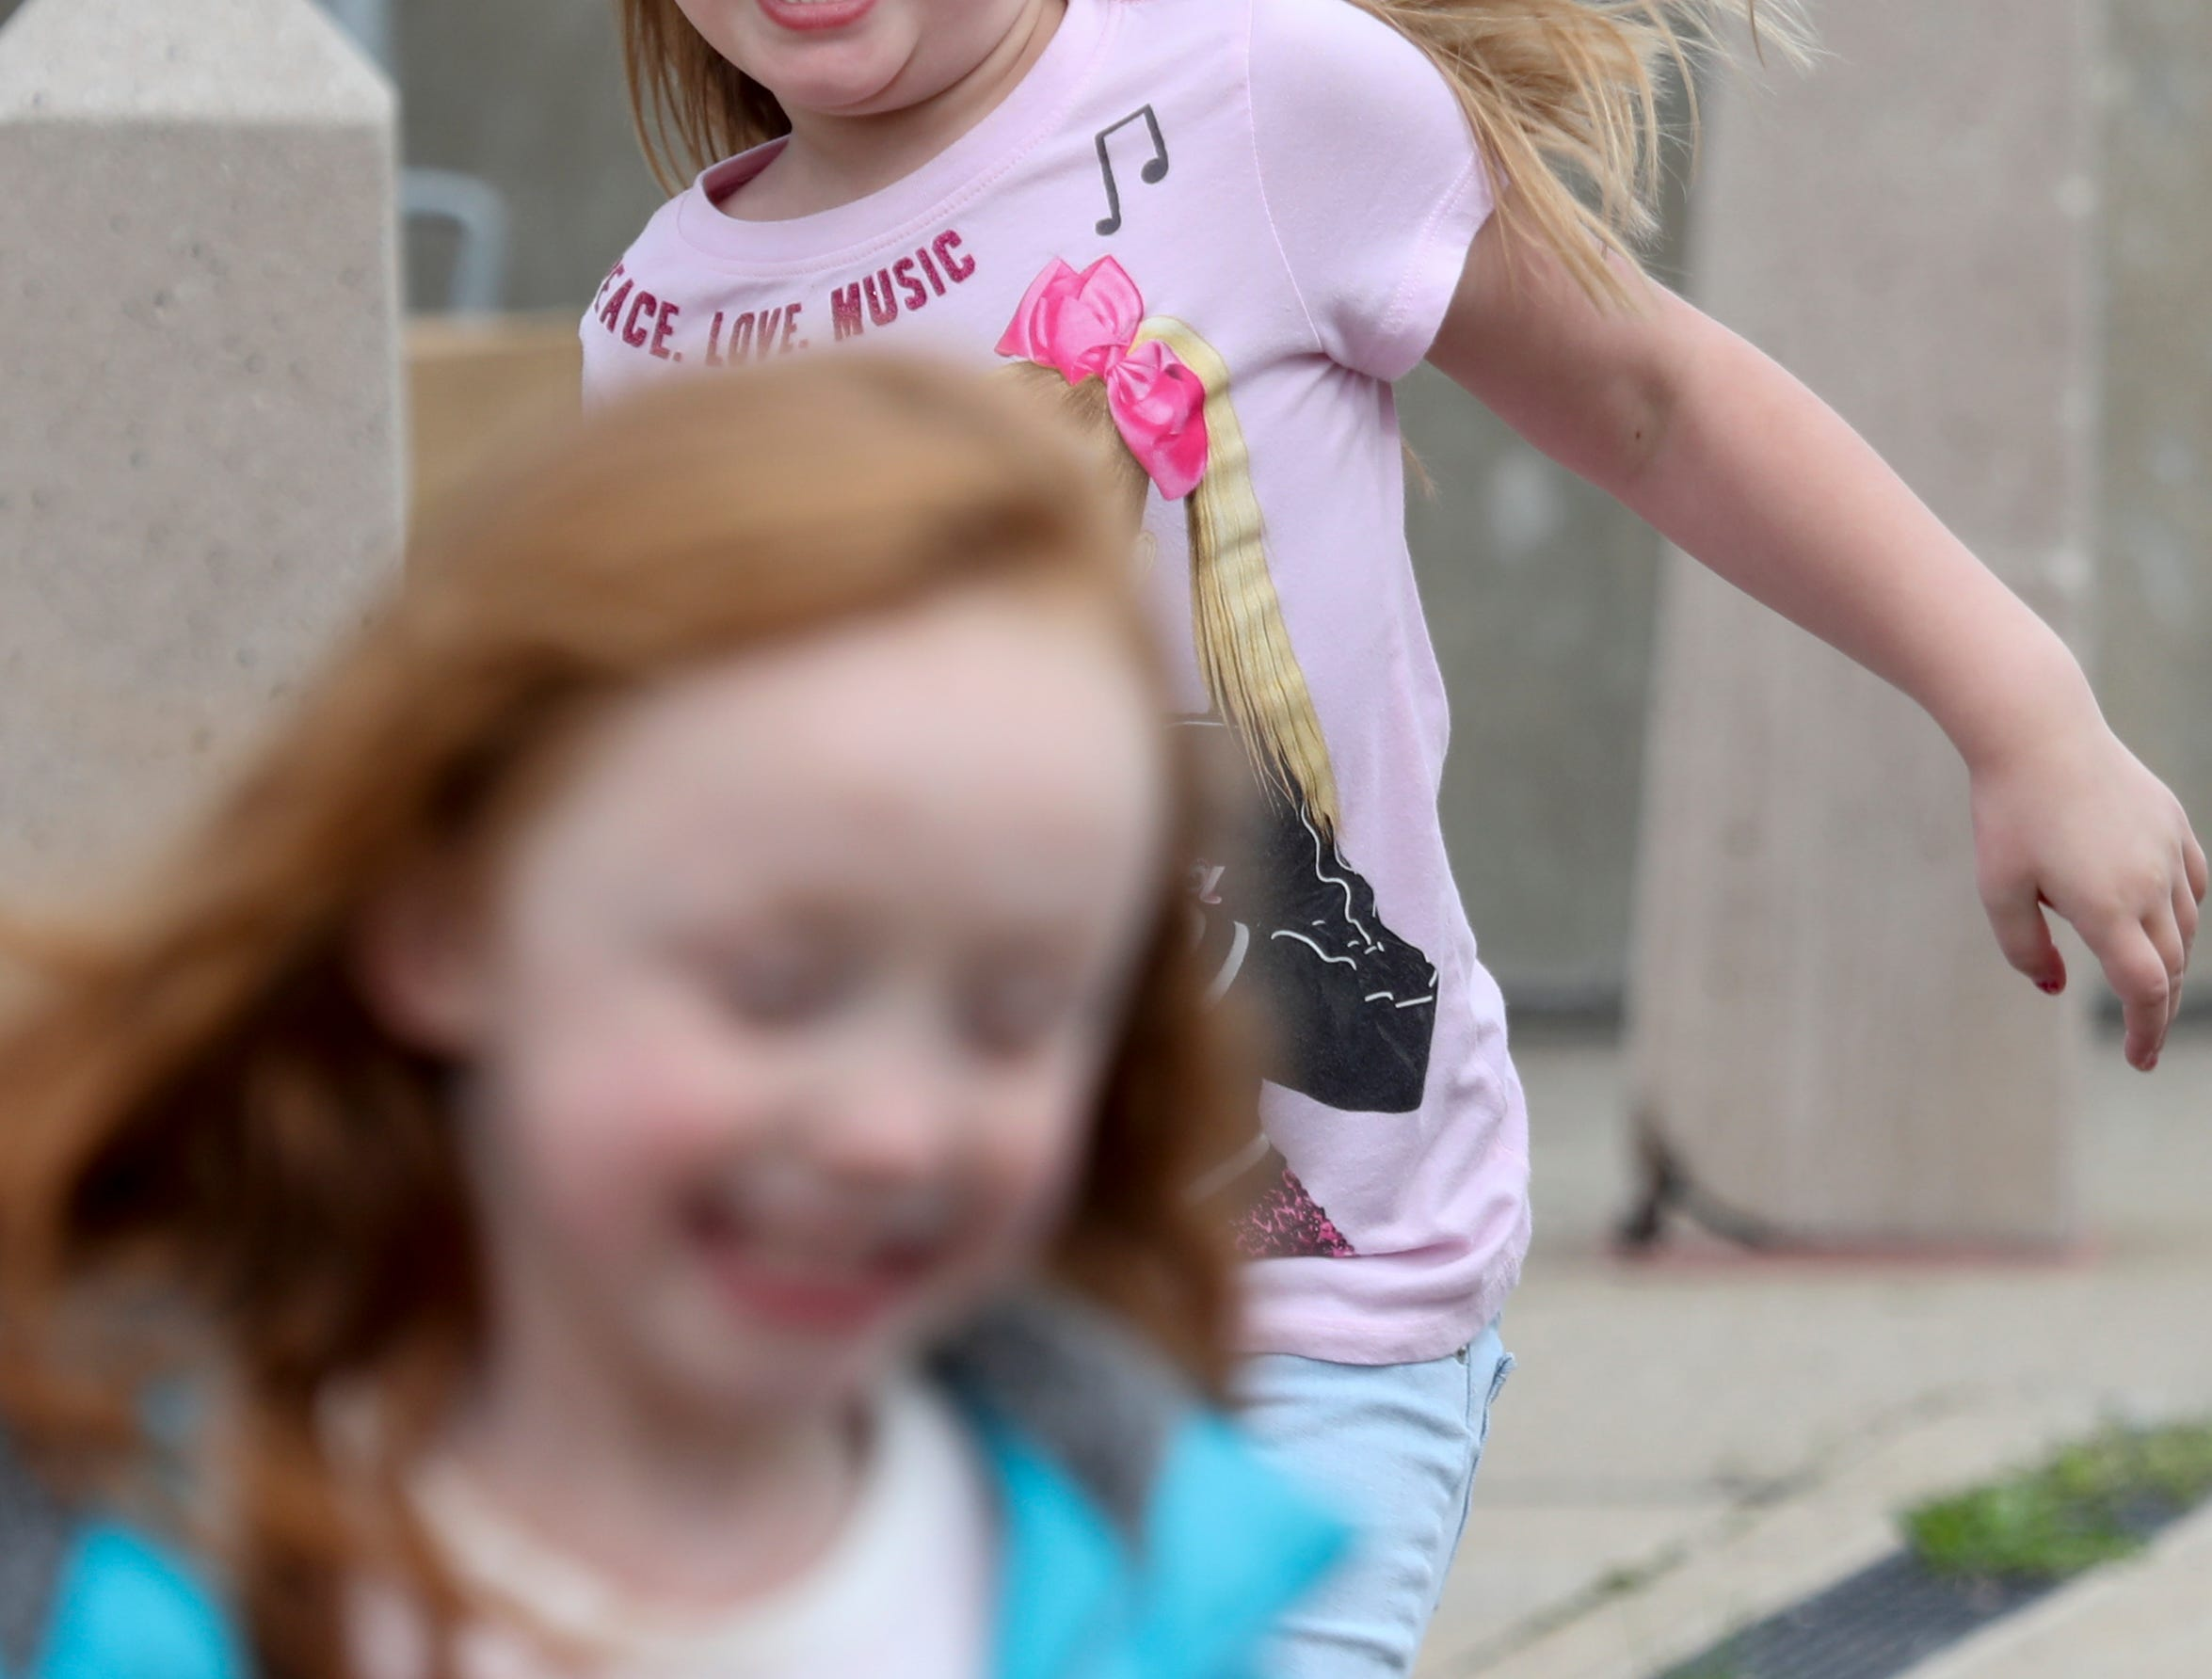 Aubree Watson chases Aianna Lynn at Thunder Over Louisville on April 13.